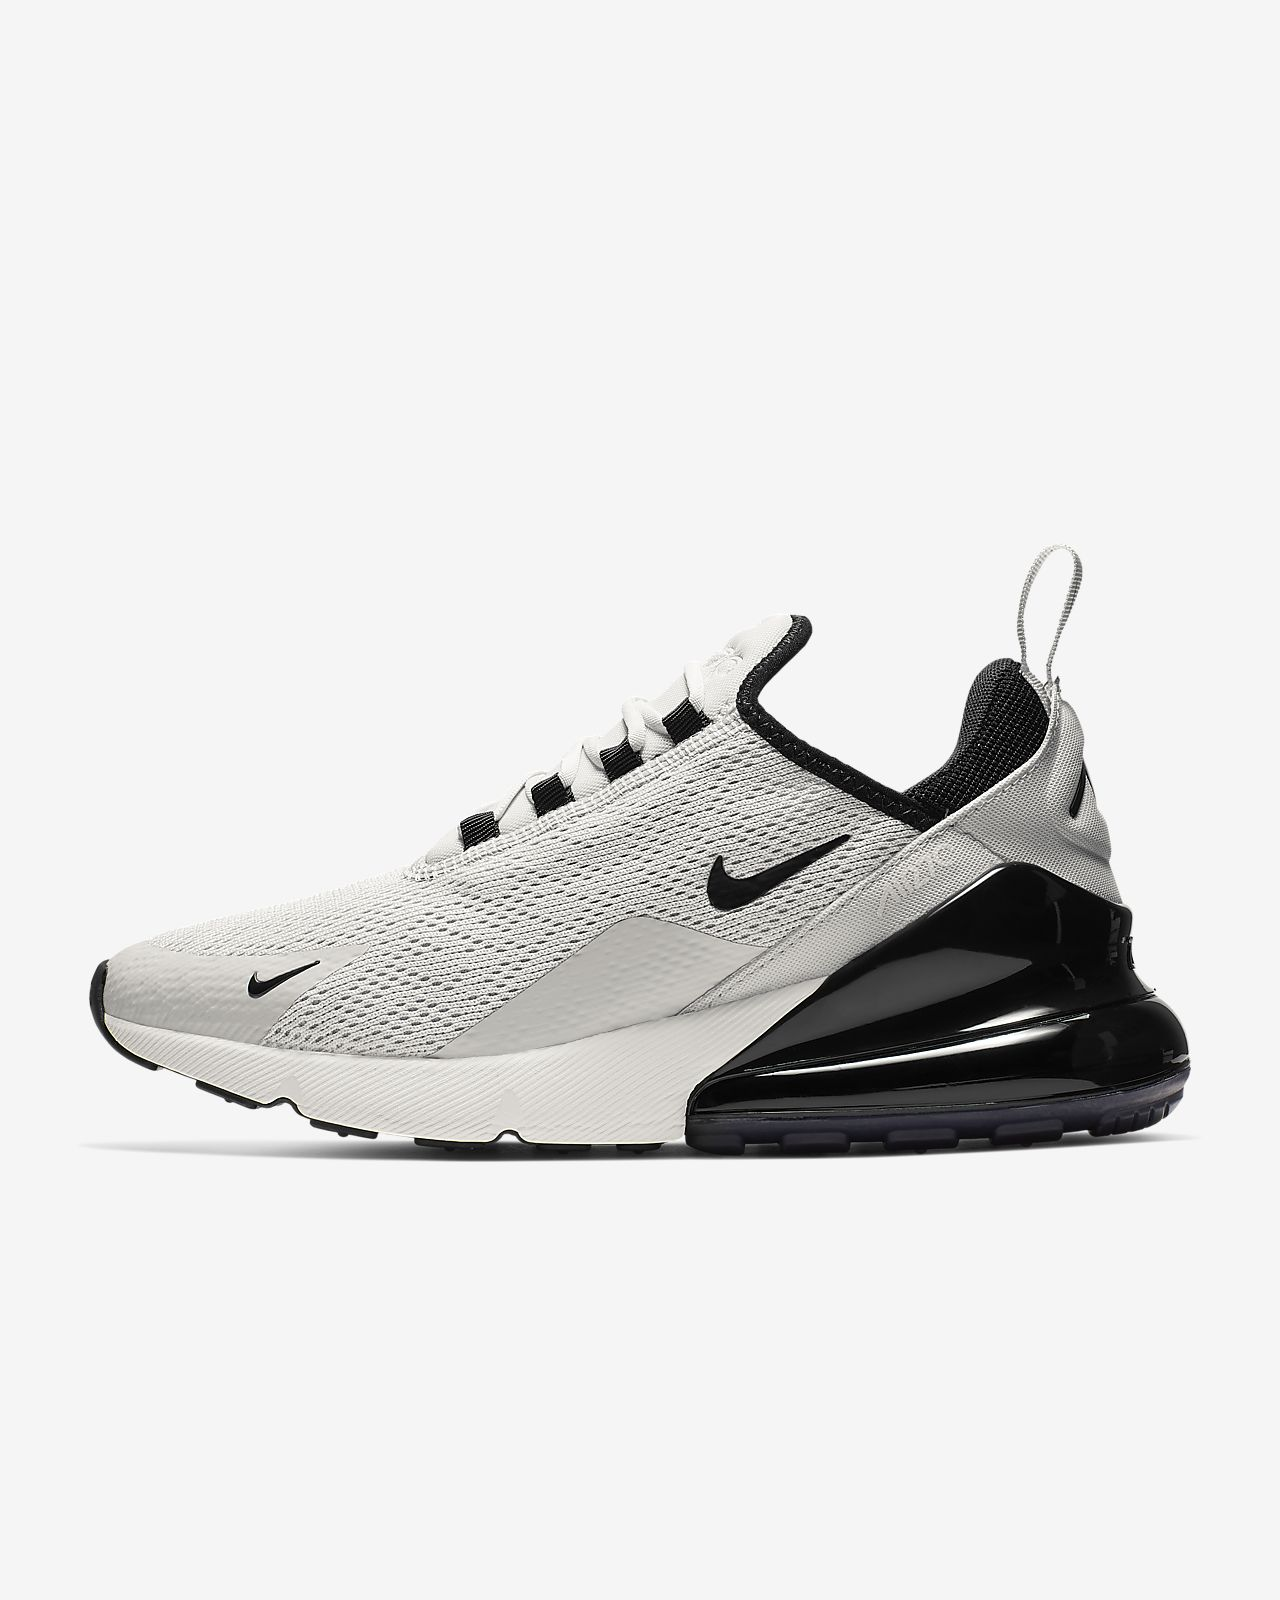 in stock c04e2 b17b2 Women s Shoe. Nike Air Max 270